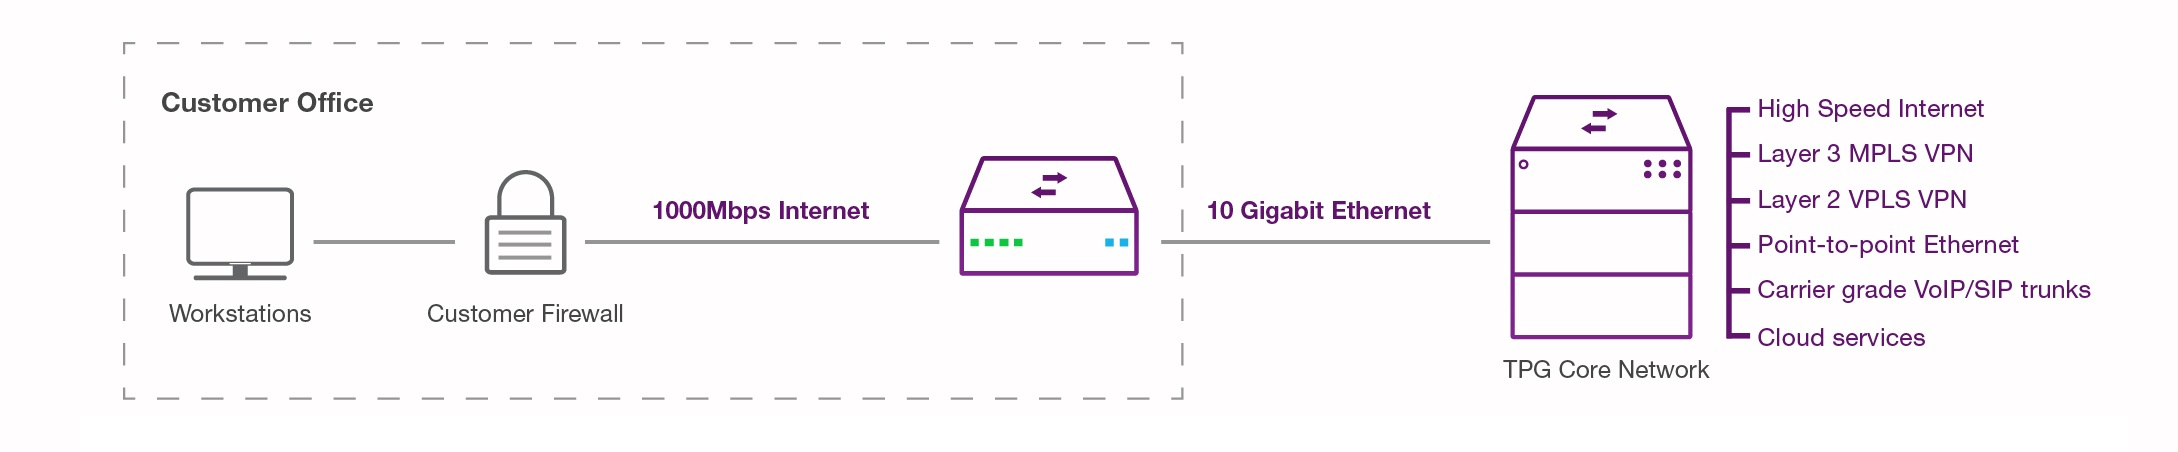 1Gbps Business Internet